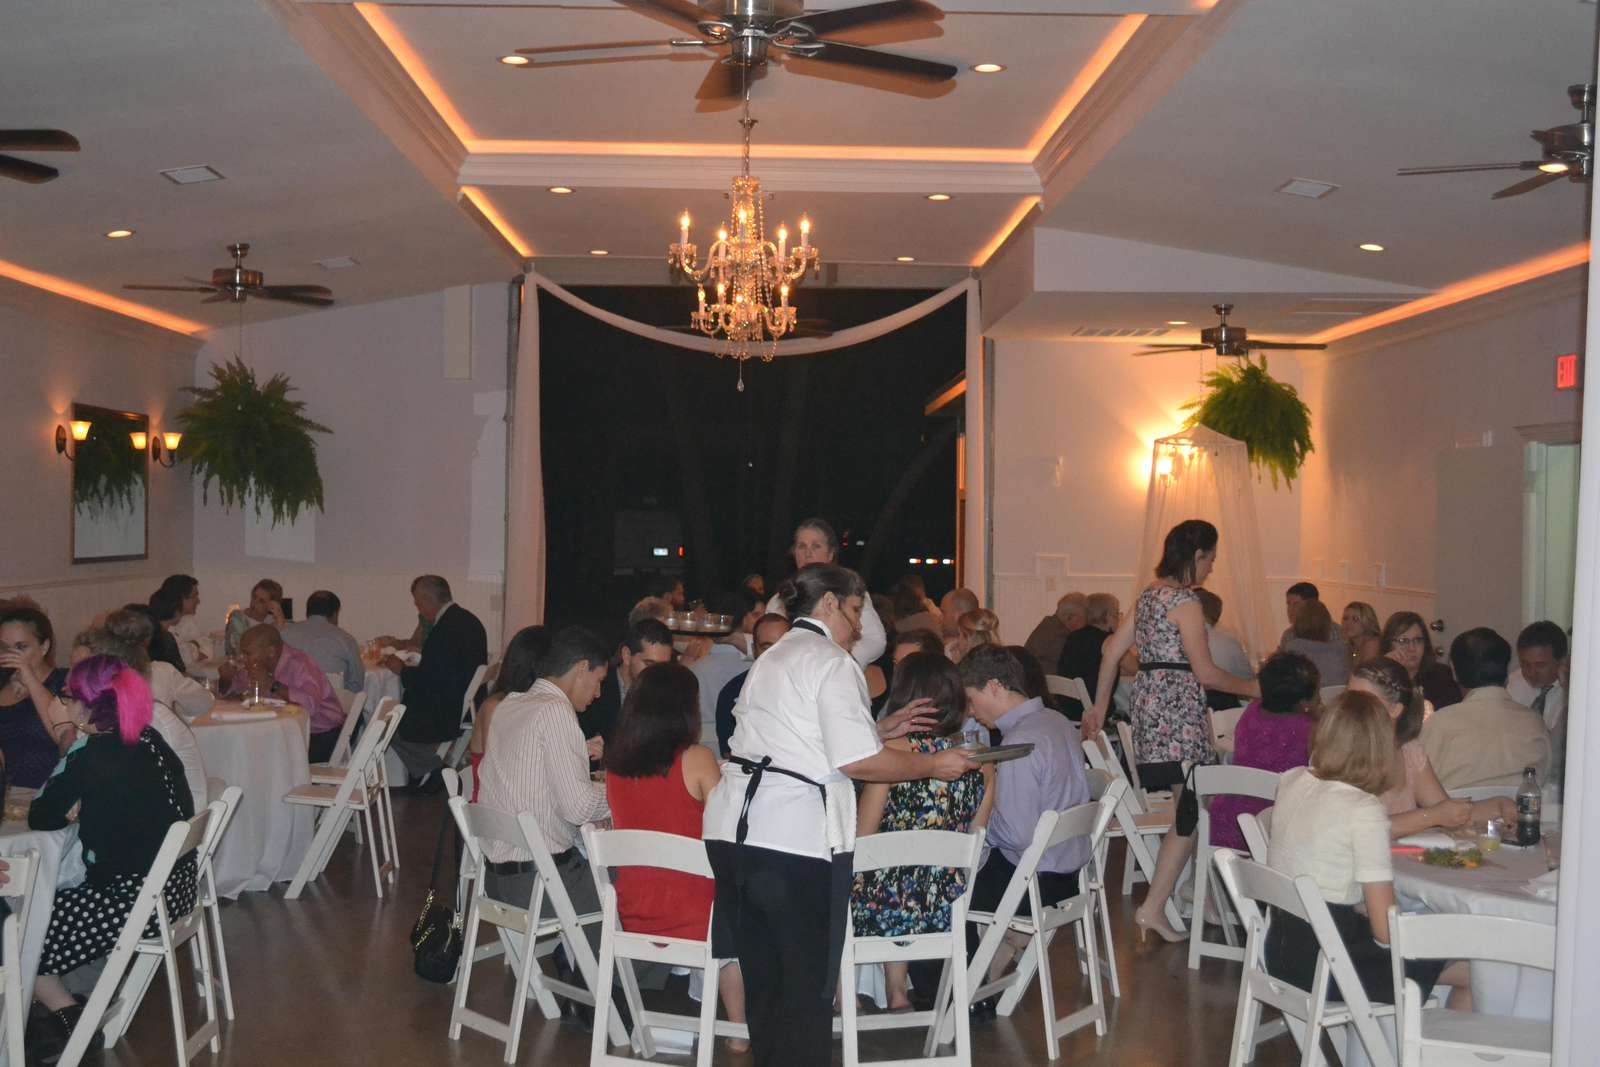 We have an event hall that's perfect for smaller weddings, corporate events and reunions.